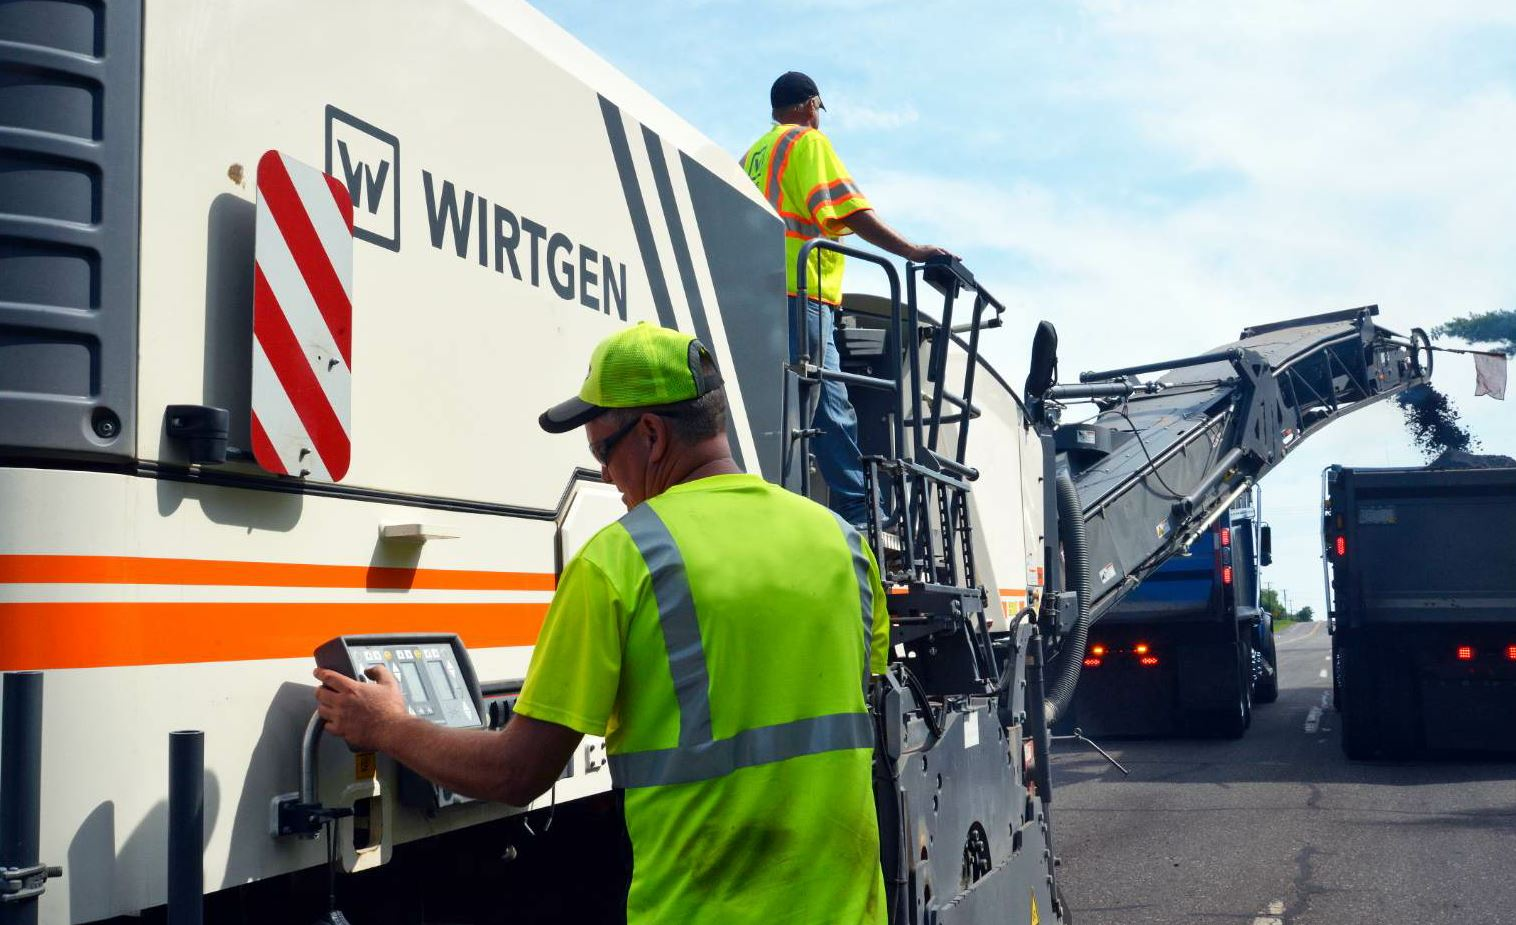 As part of start-up procedure, make sure the entire crew knows the plan for the day's work. Both photos courtesy Wirtgen America.